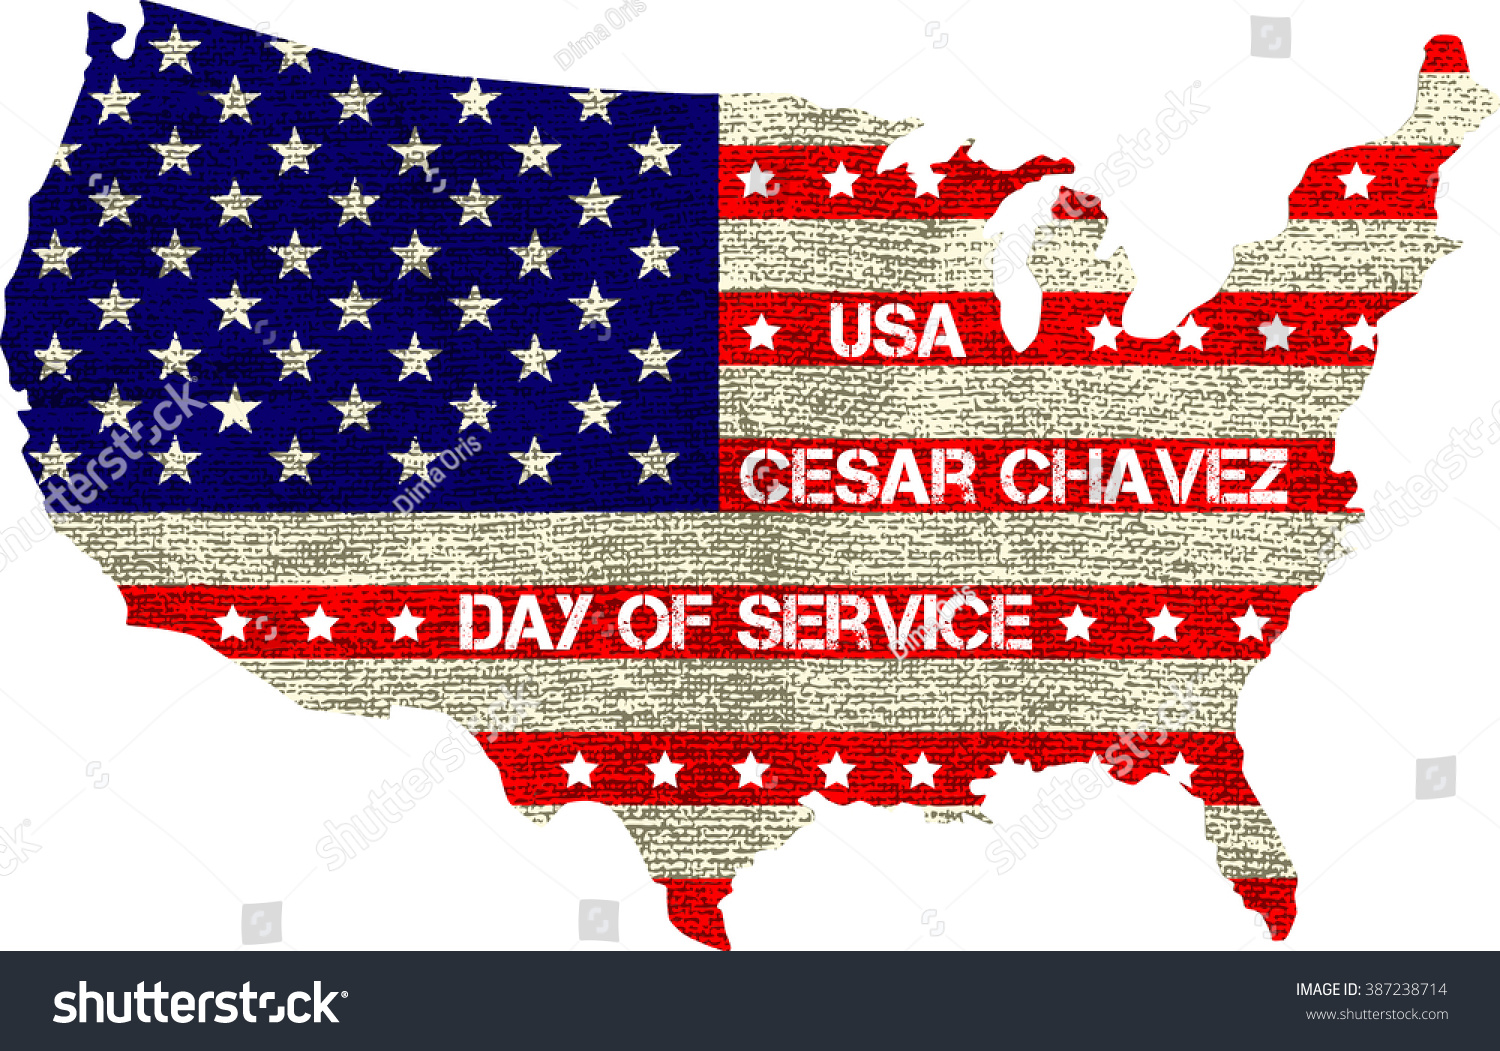 Greeting Card Cesar Chavez Day Service Stock Vector Royalty Free